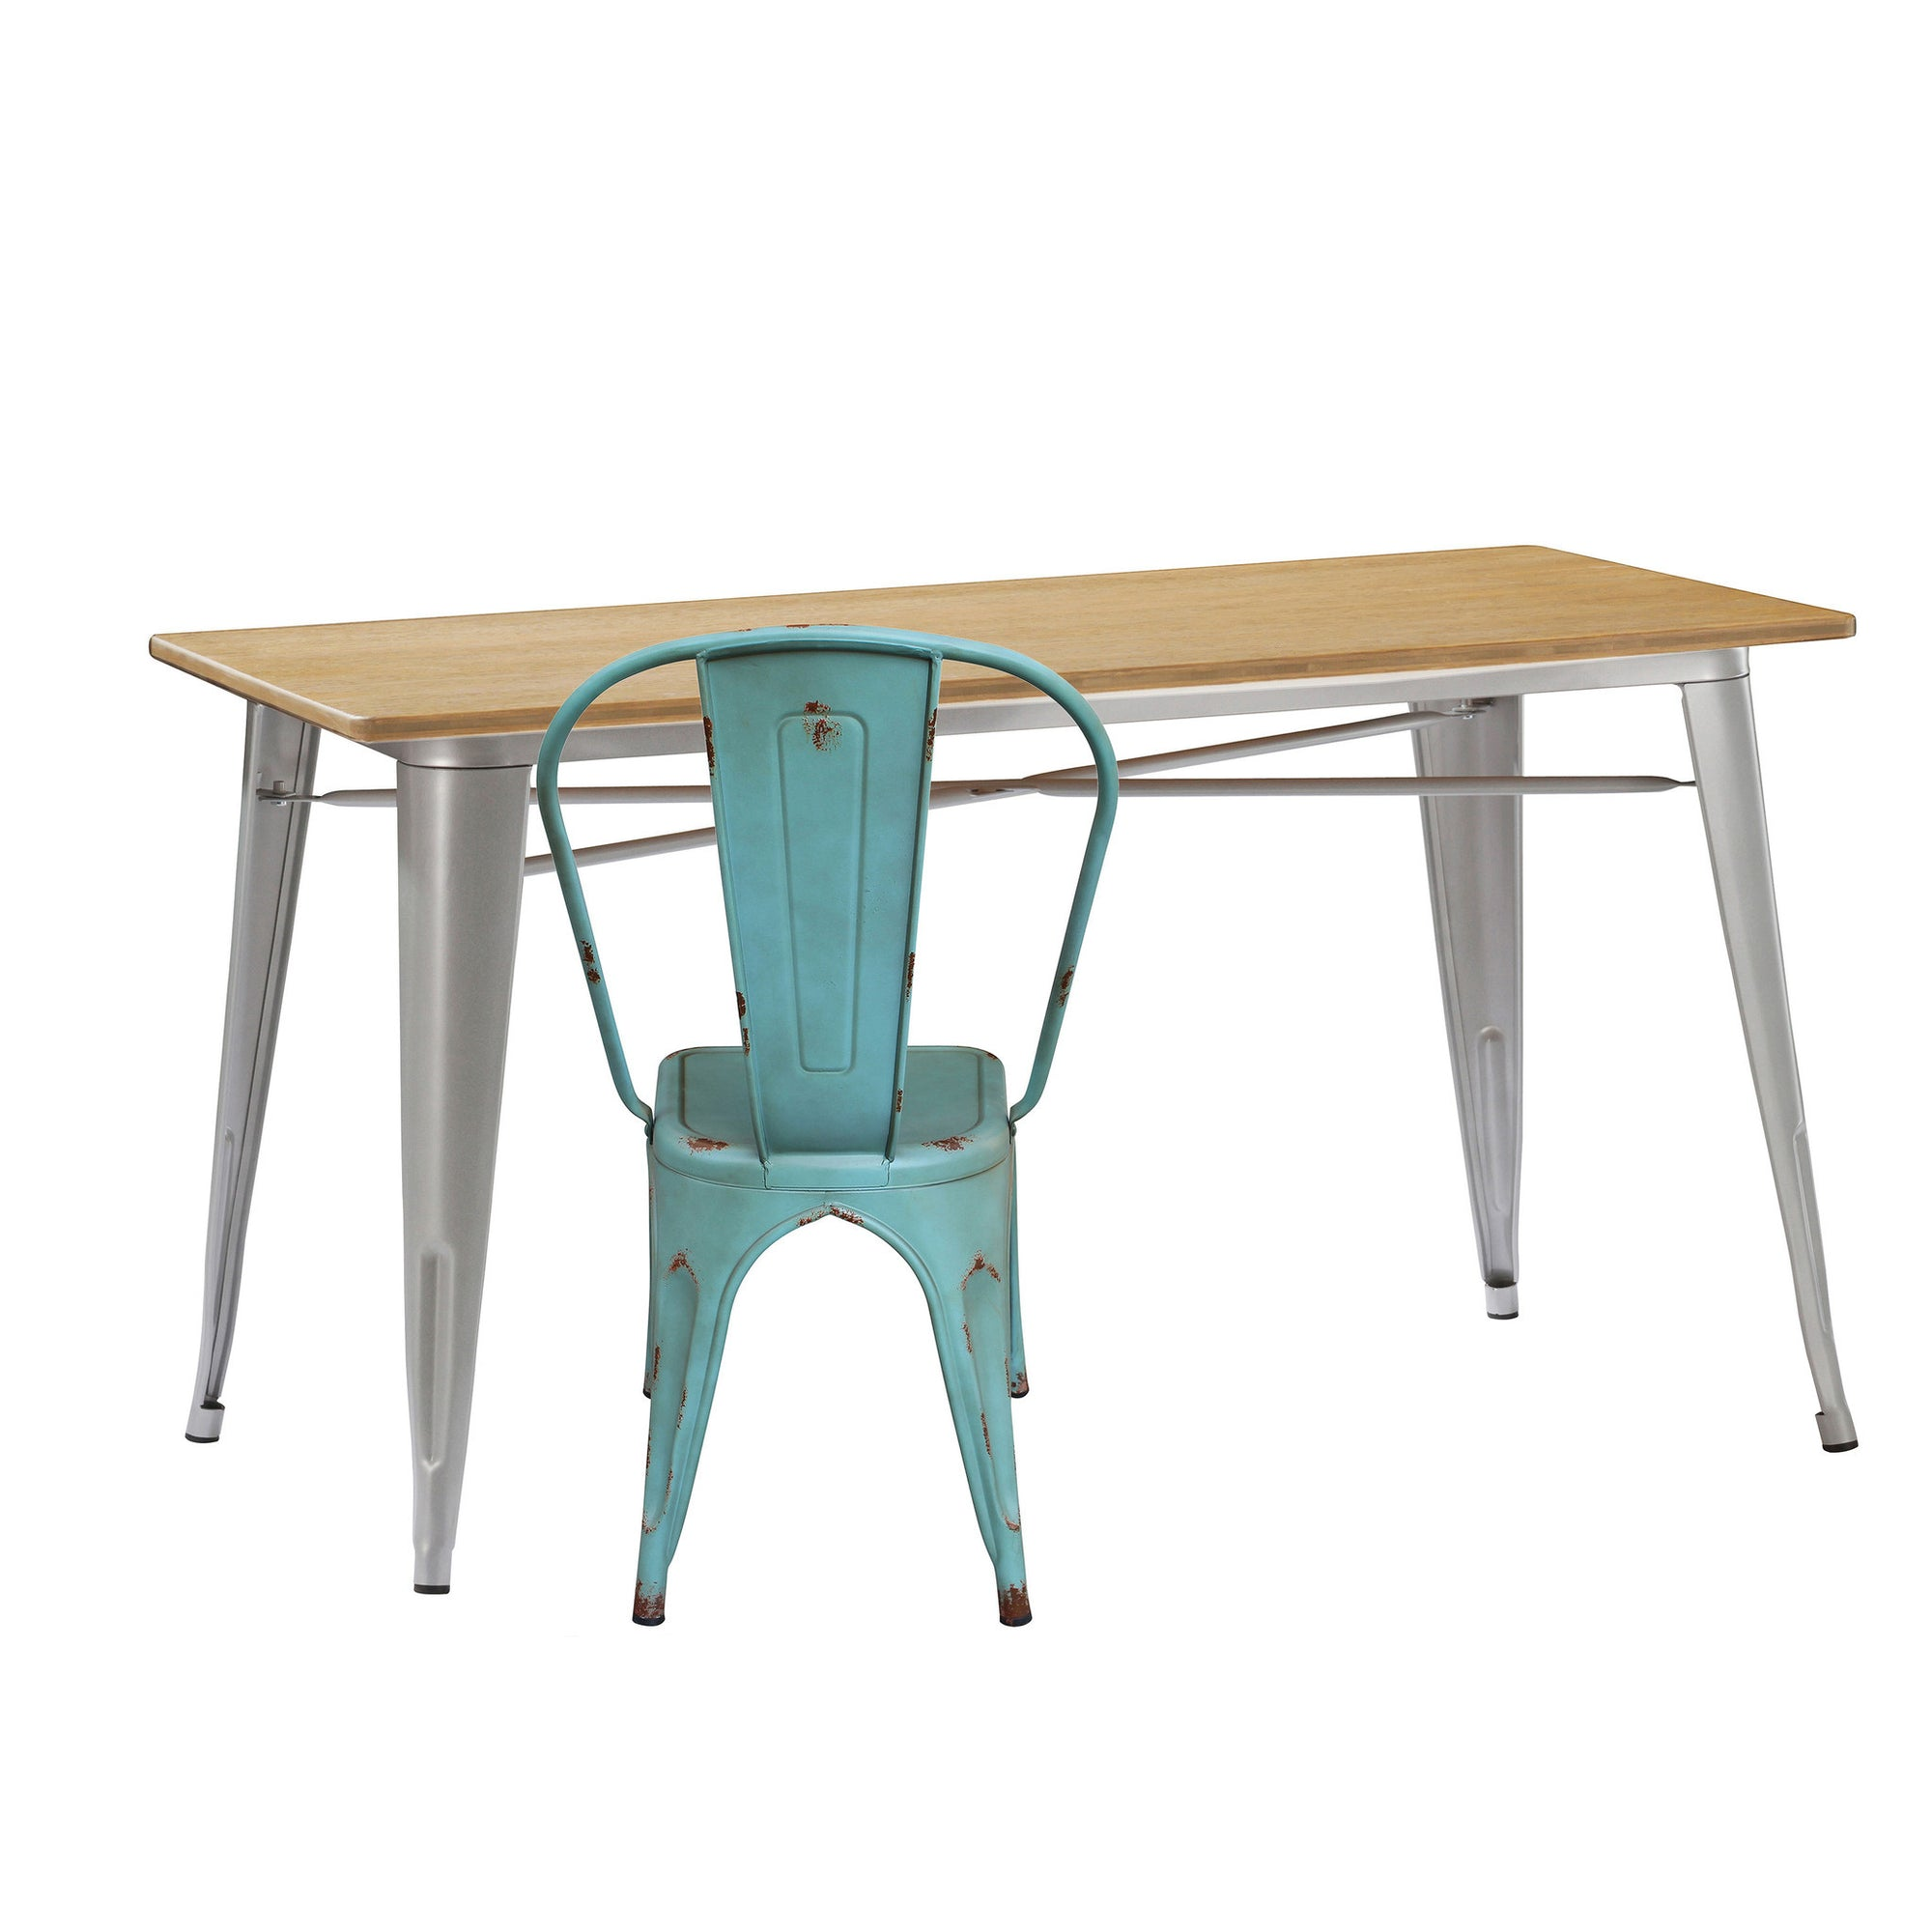 Dinning Table - Industrial Table With Solid Wood Top 120 Cm BPTT02S+N